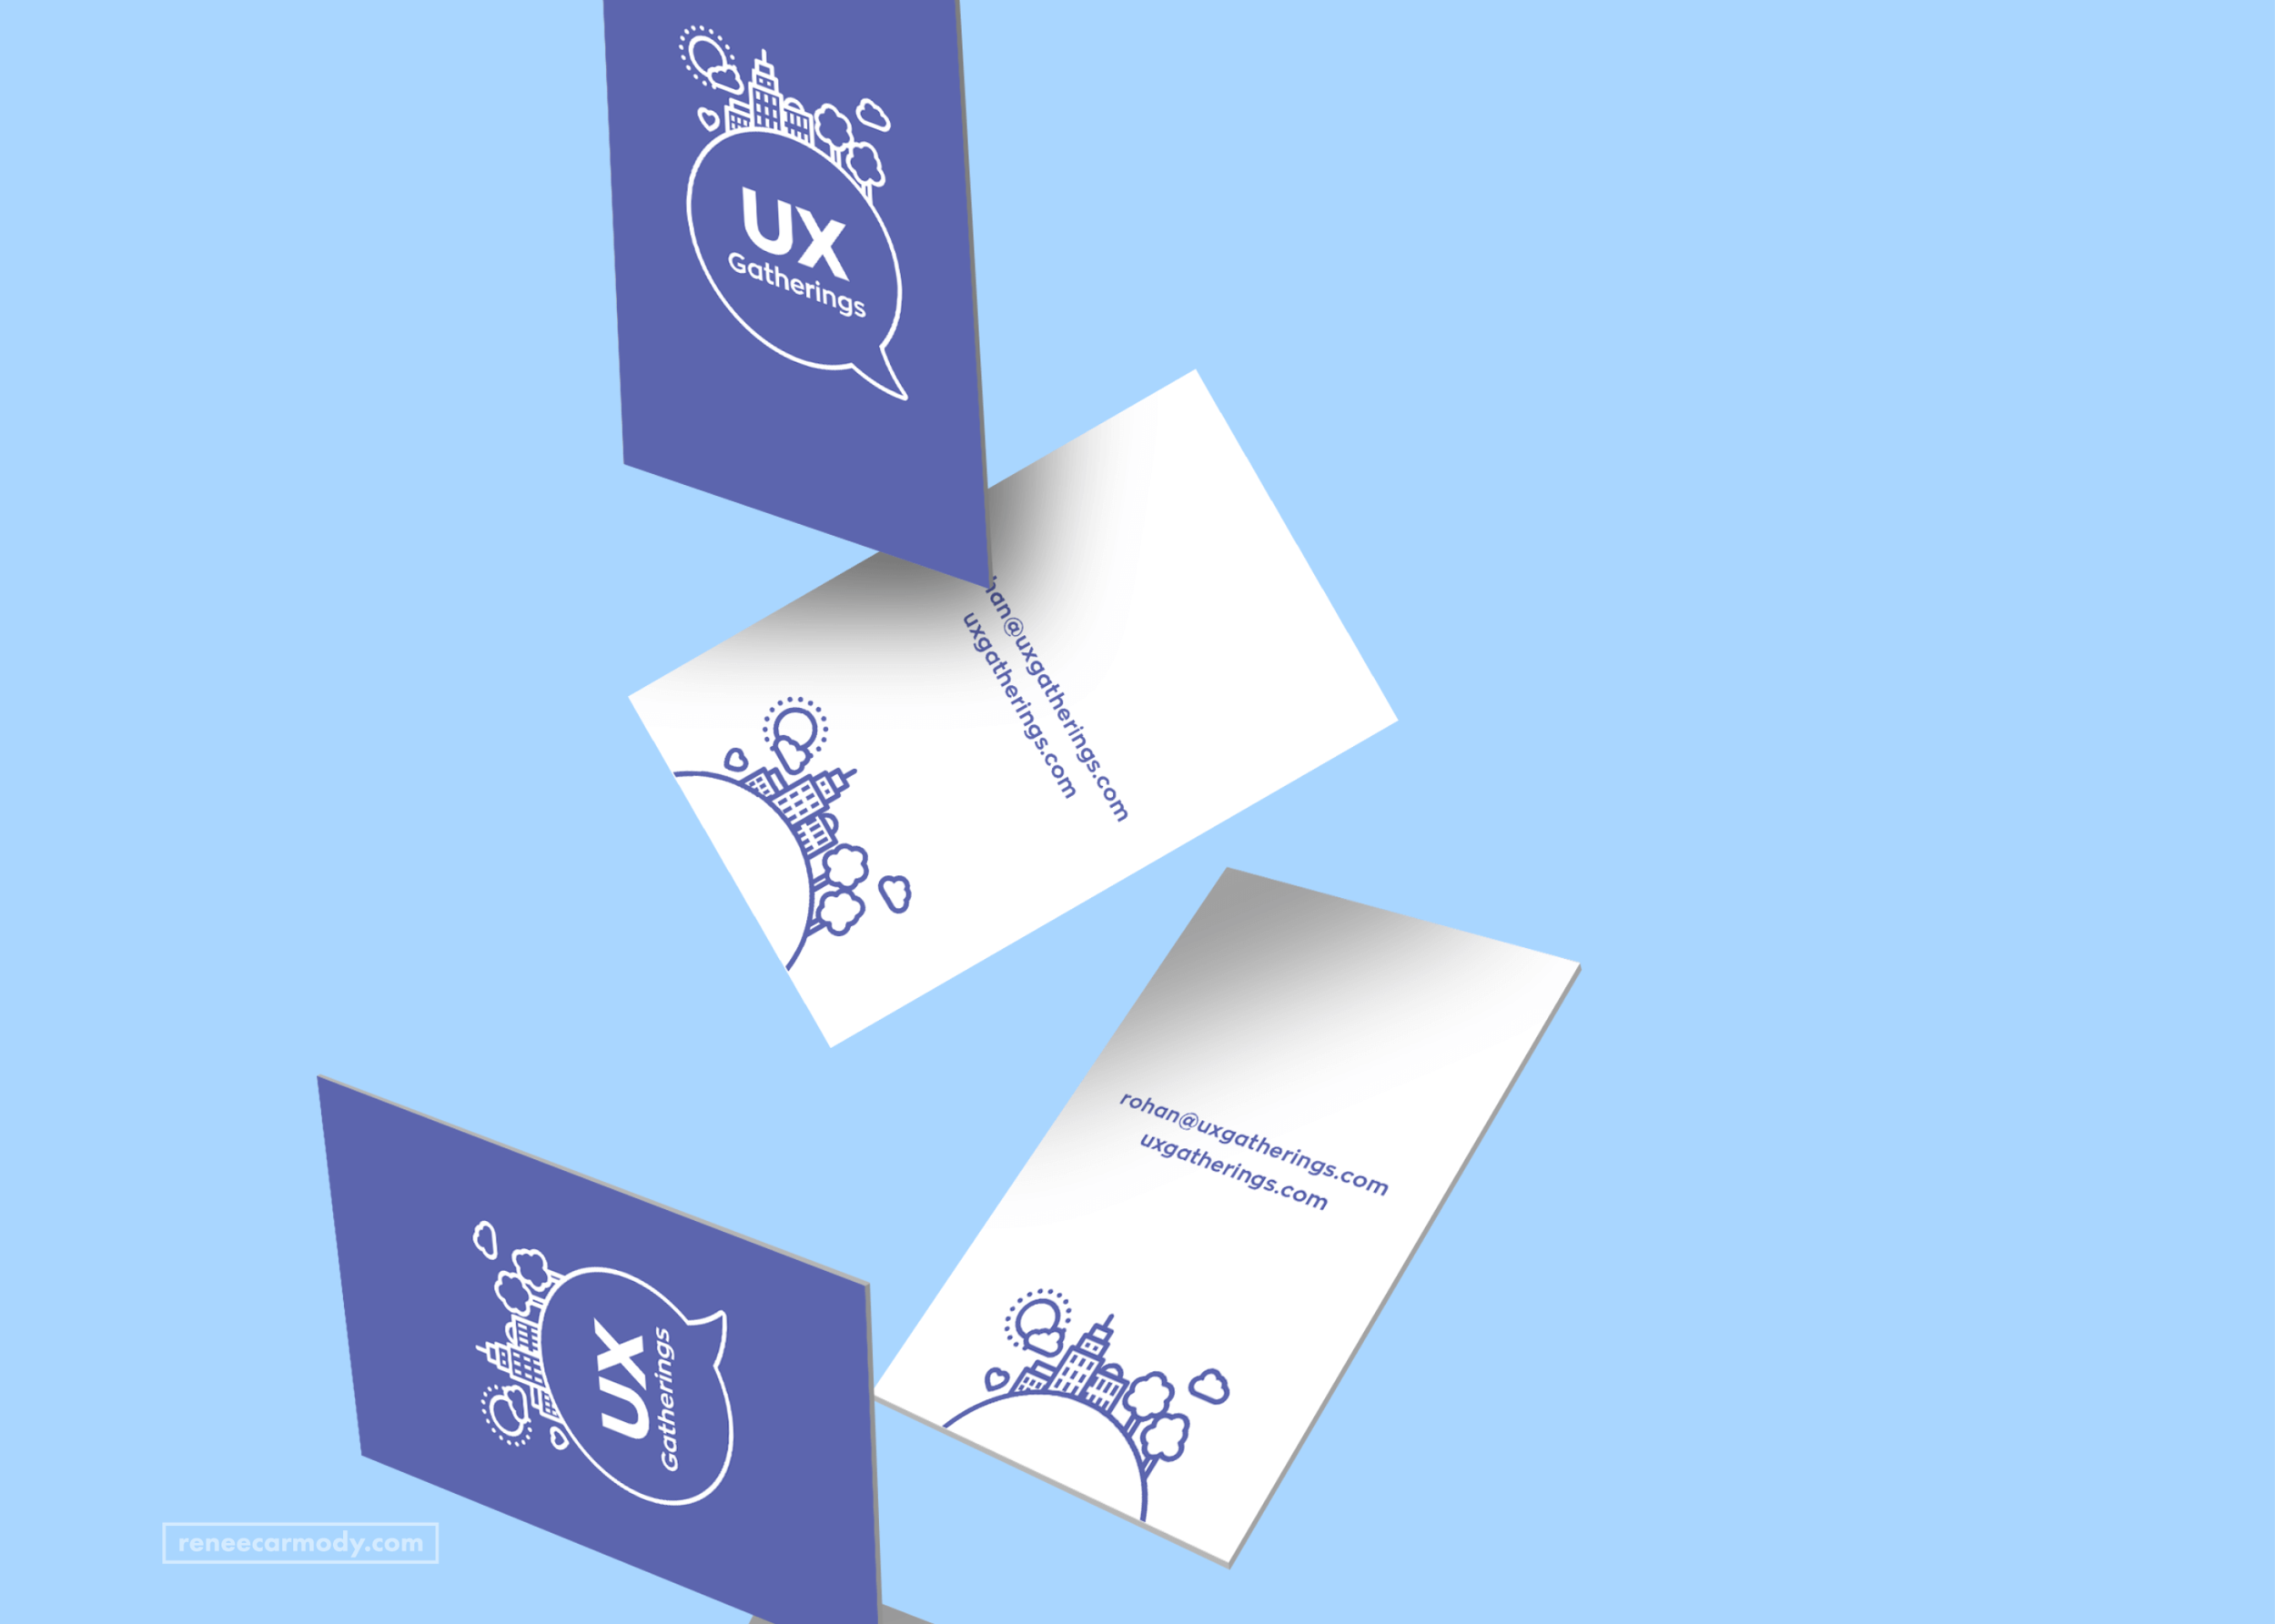 Brand and business card design by Renée Carmody Design for UX Gatherings.